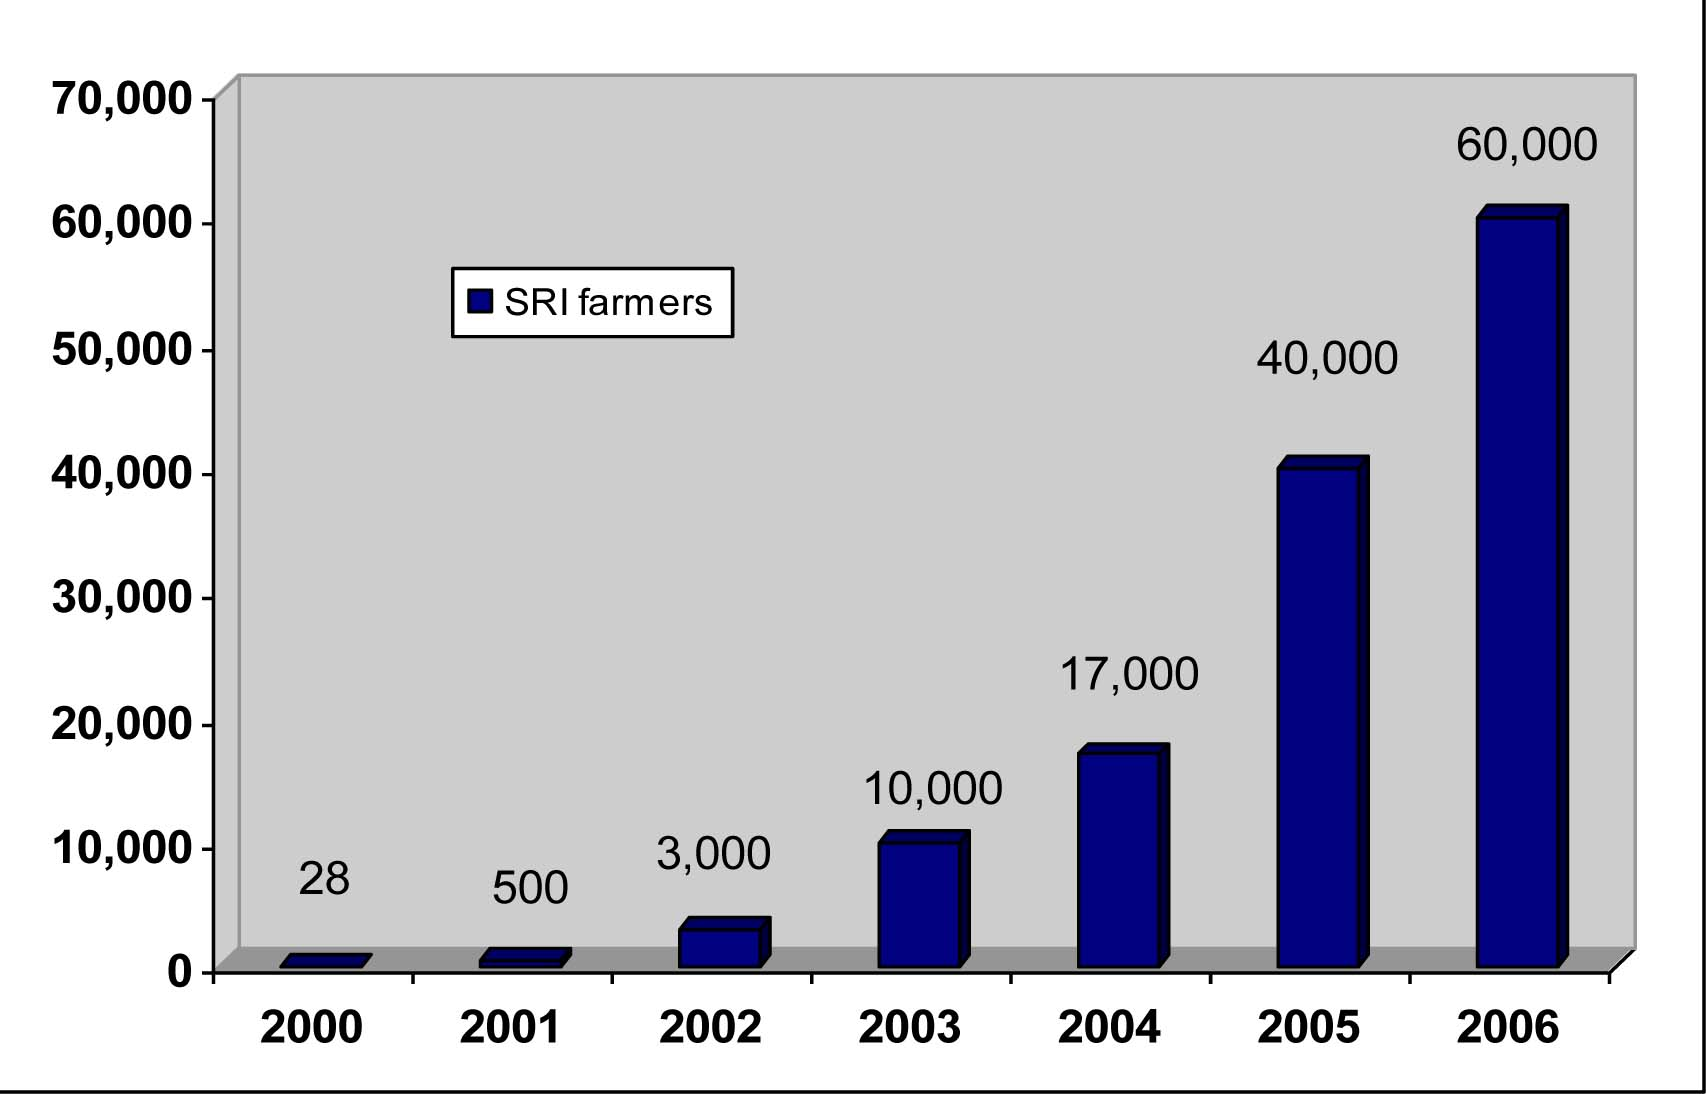 Progress in the number of Cambodian SRI rice farmers 2000-2006. Source: CEDAC report